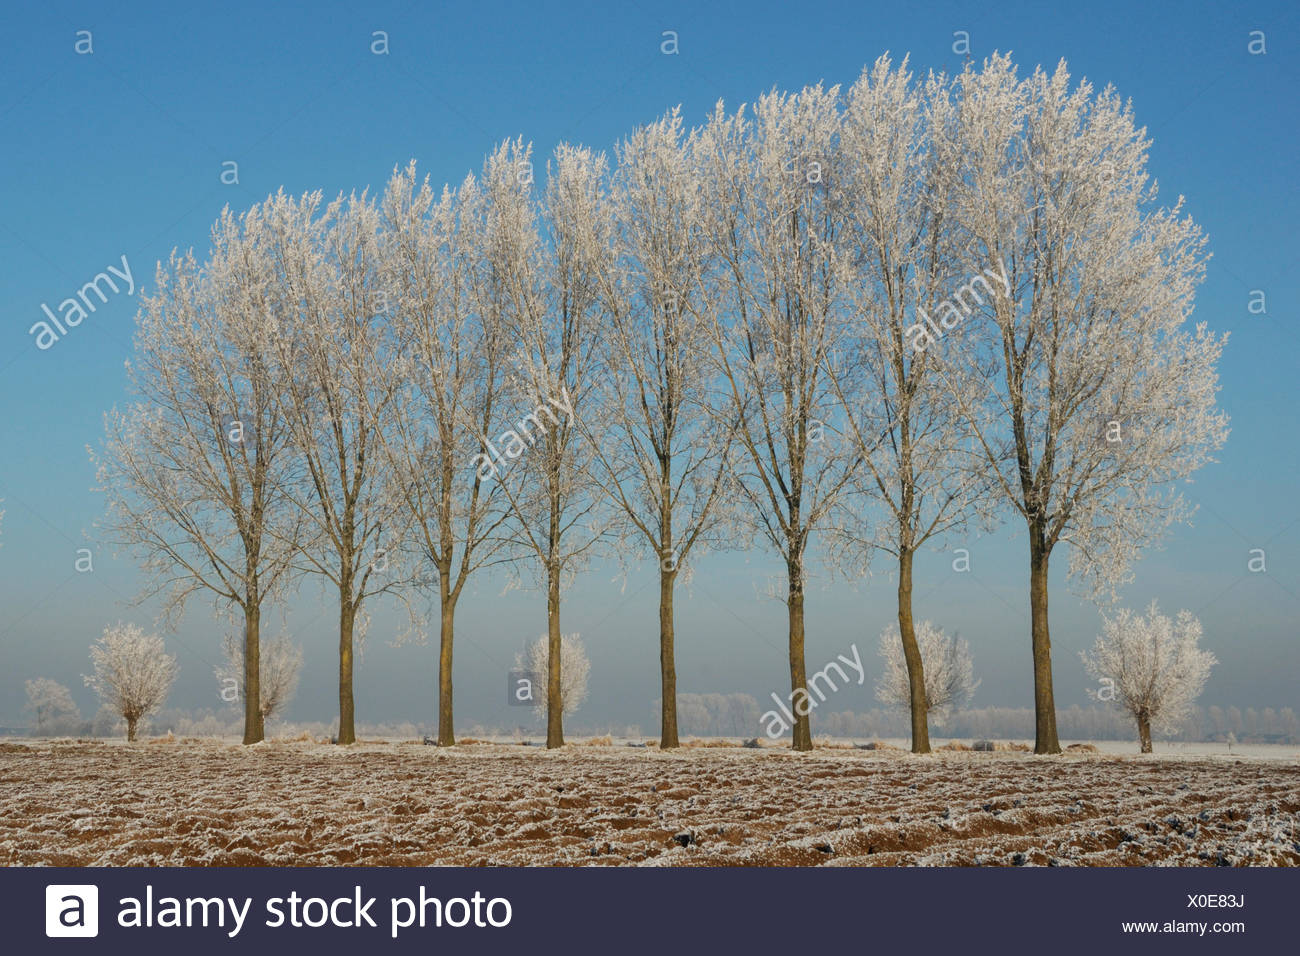 Poplars covered with frost in winter landscape Stock Photo